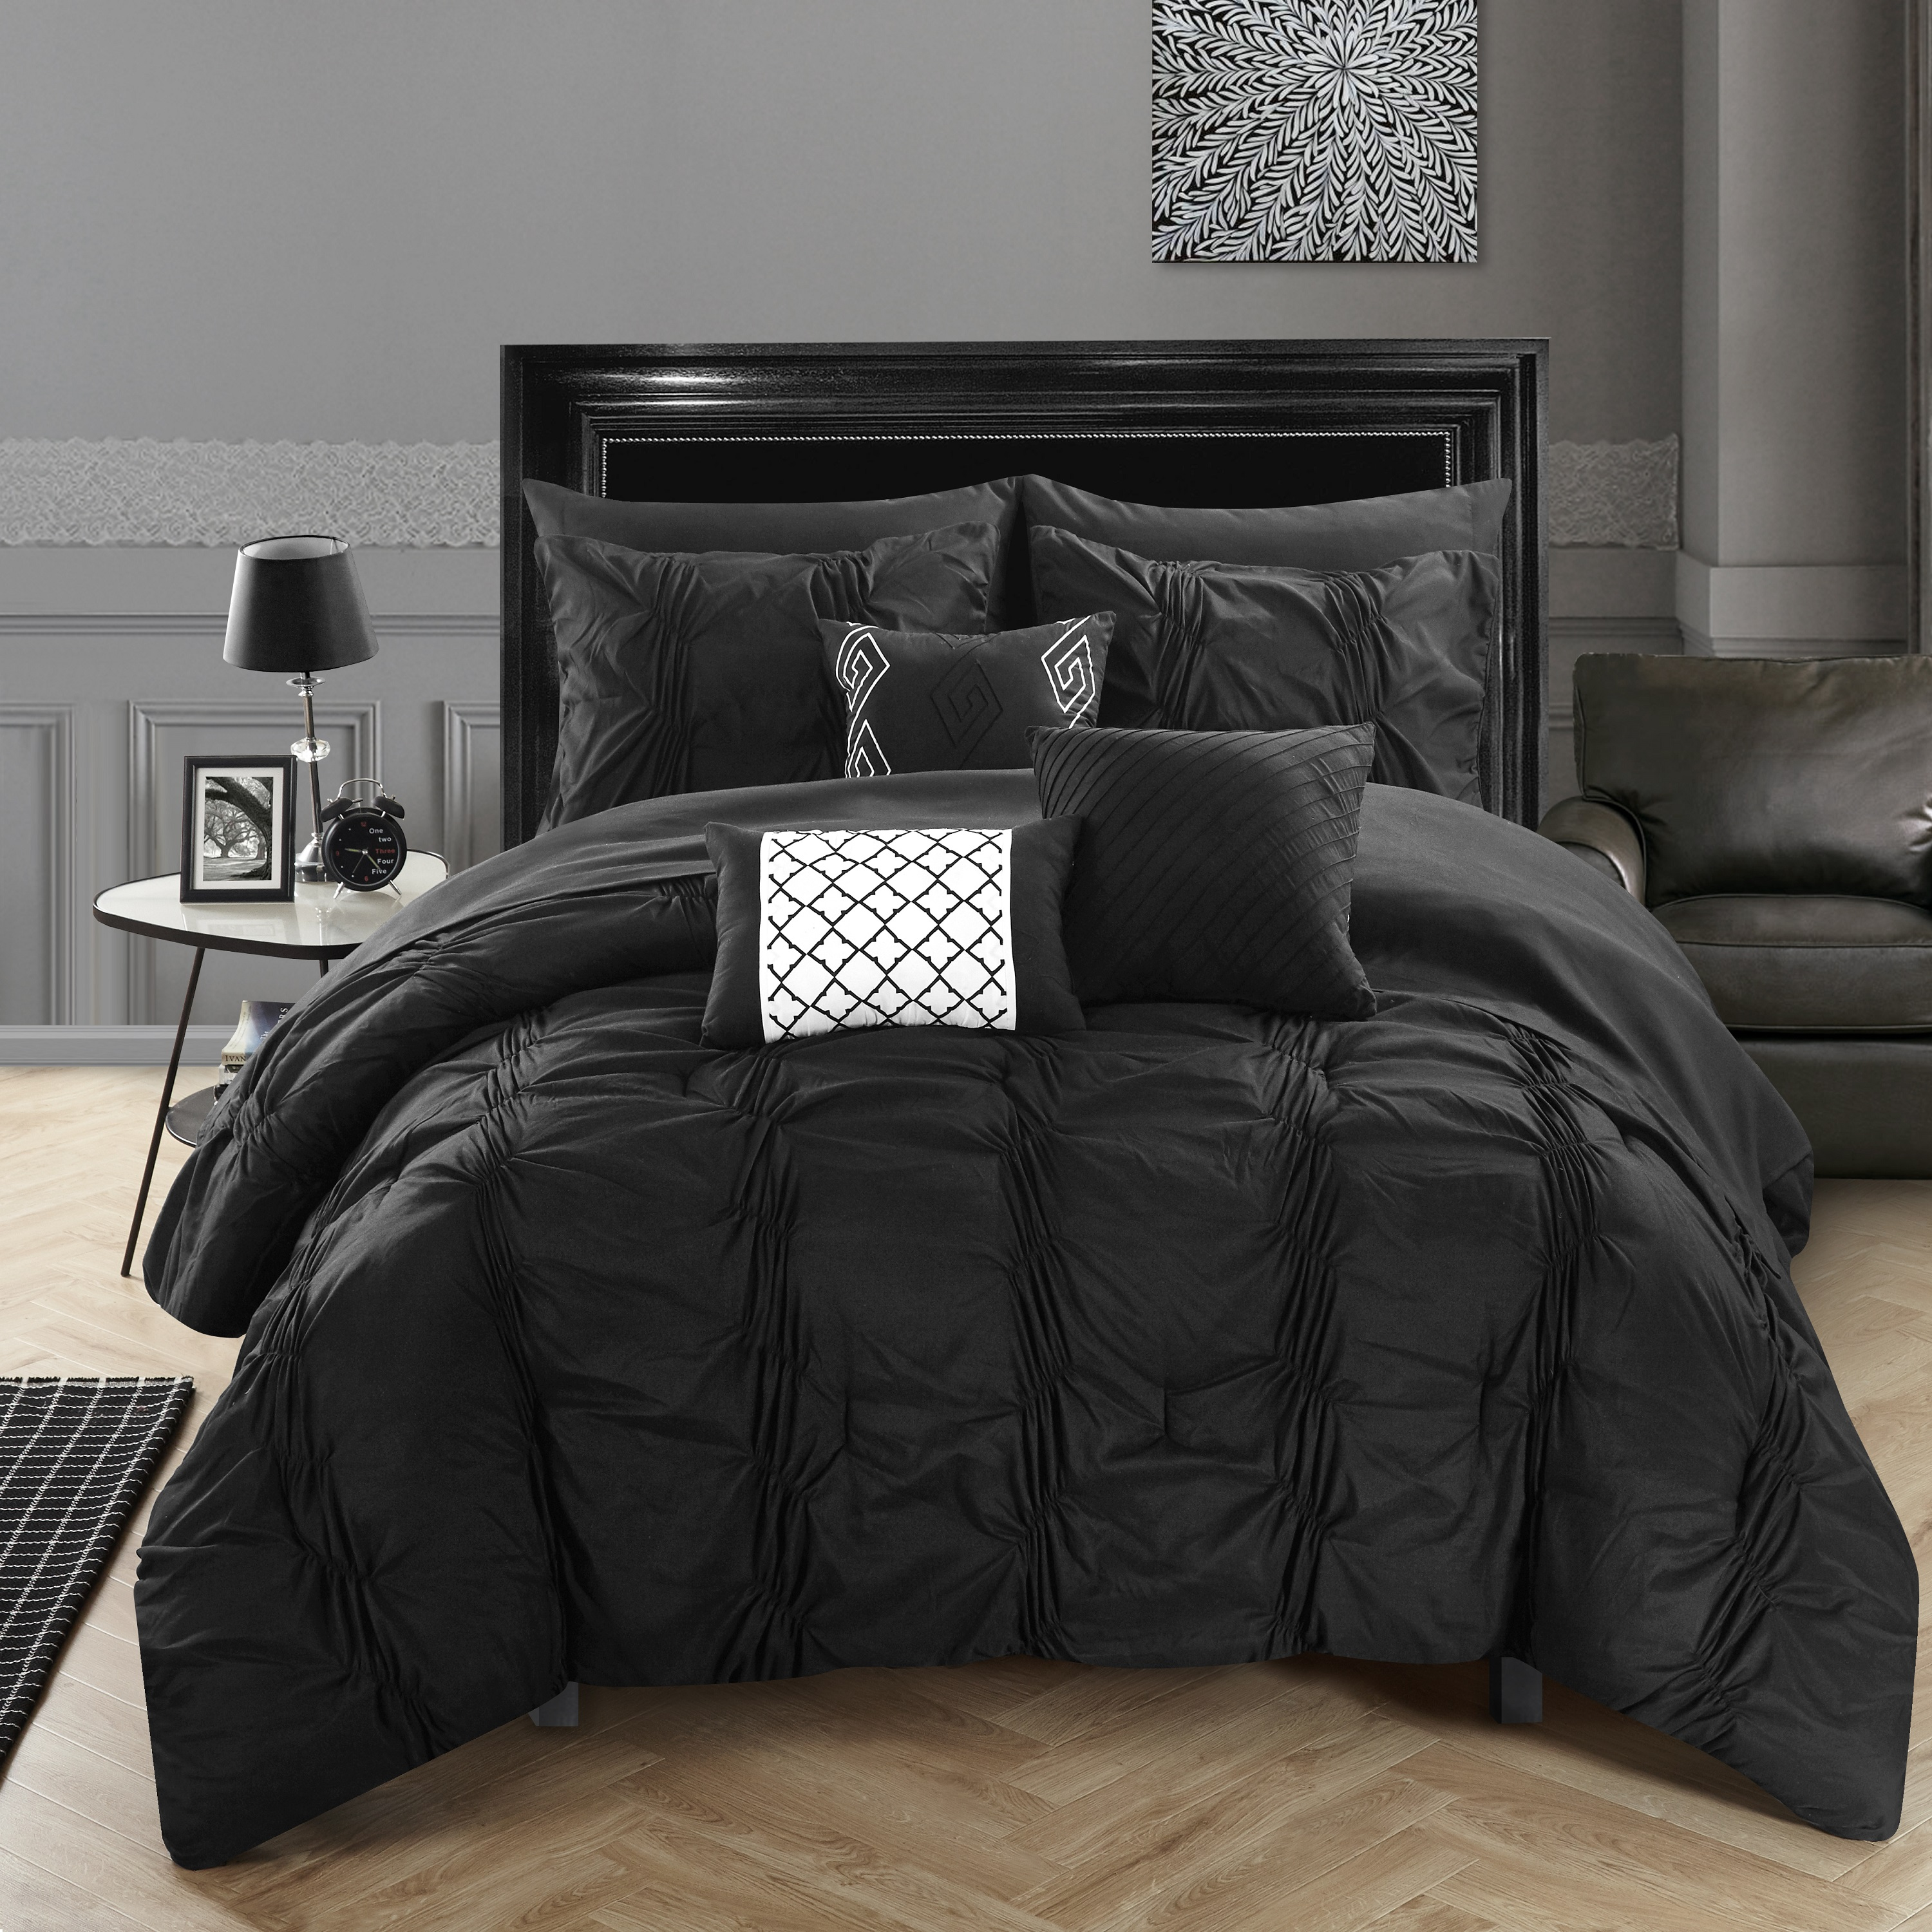 Chic Home 10-Piece Luna Pinch Pleated, ruffled and pleated complete Queen Bed In a Bag Comforter Set Black Sheets set and Decorative pillows included